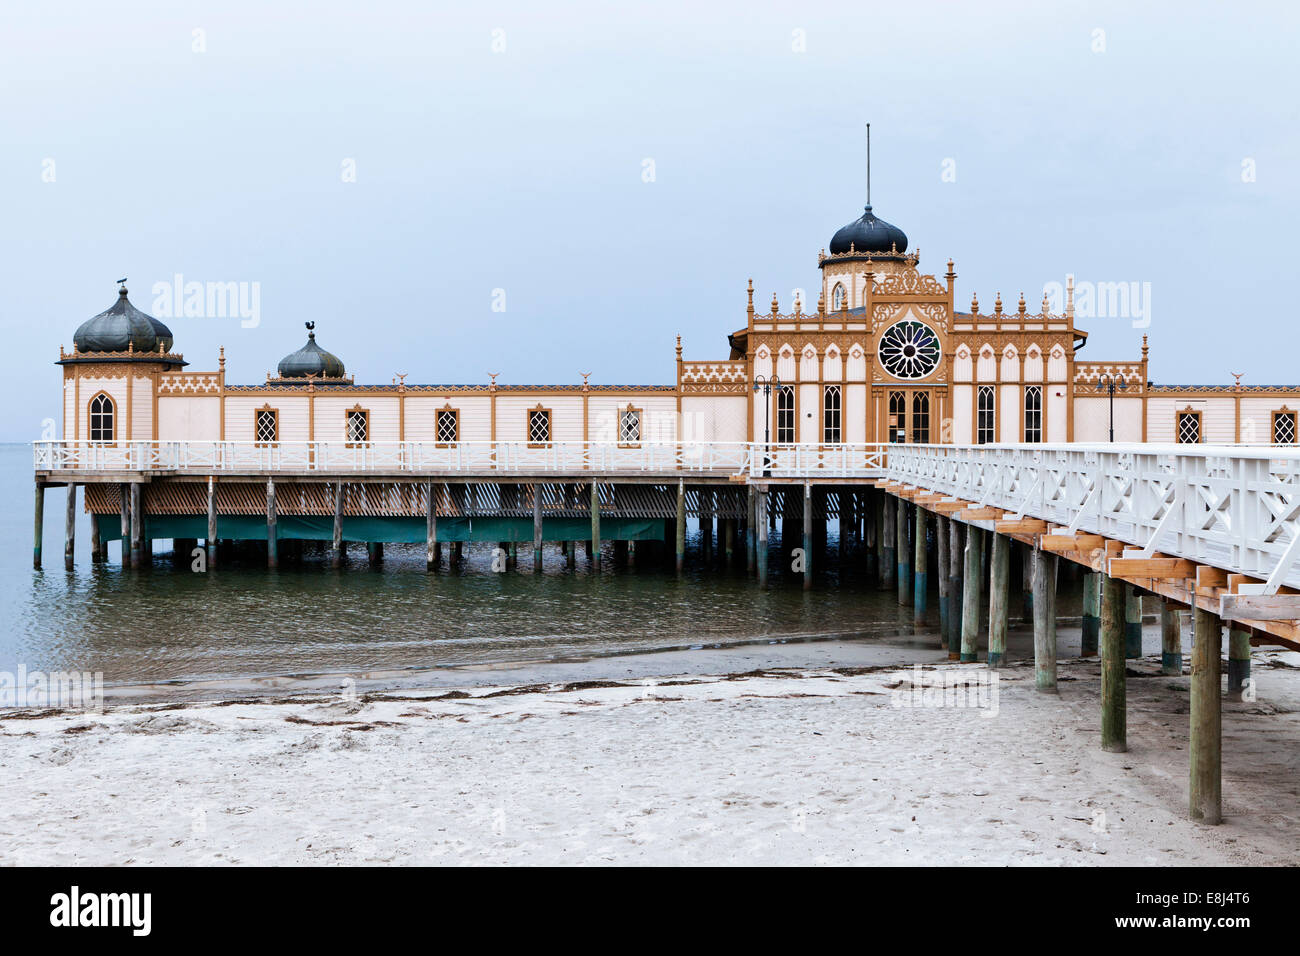 Kallbadhus or cold bath house, built in 1903, on the beach of the Kattegat, Varberg, Sweden - Stock Image